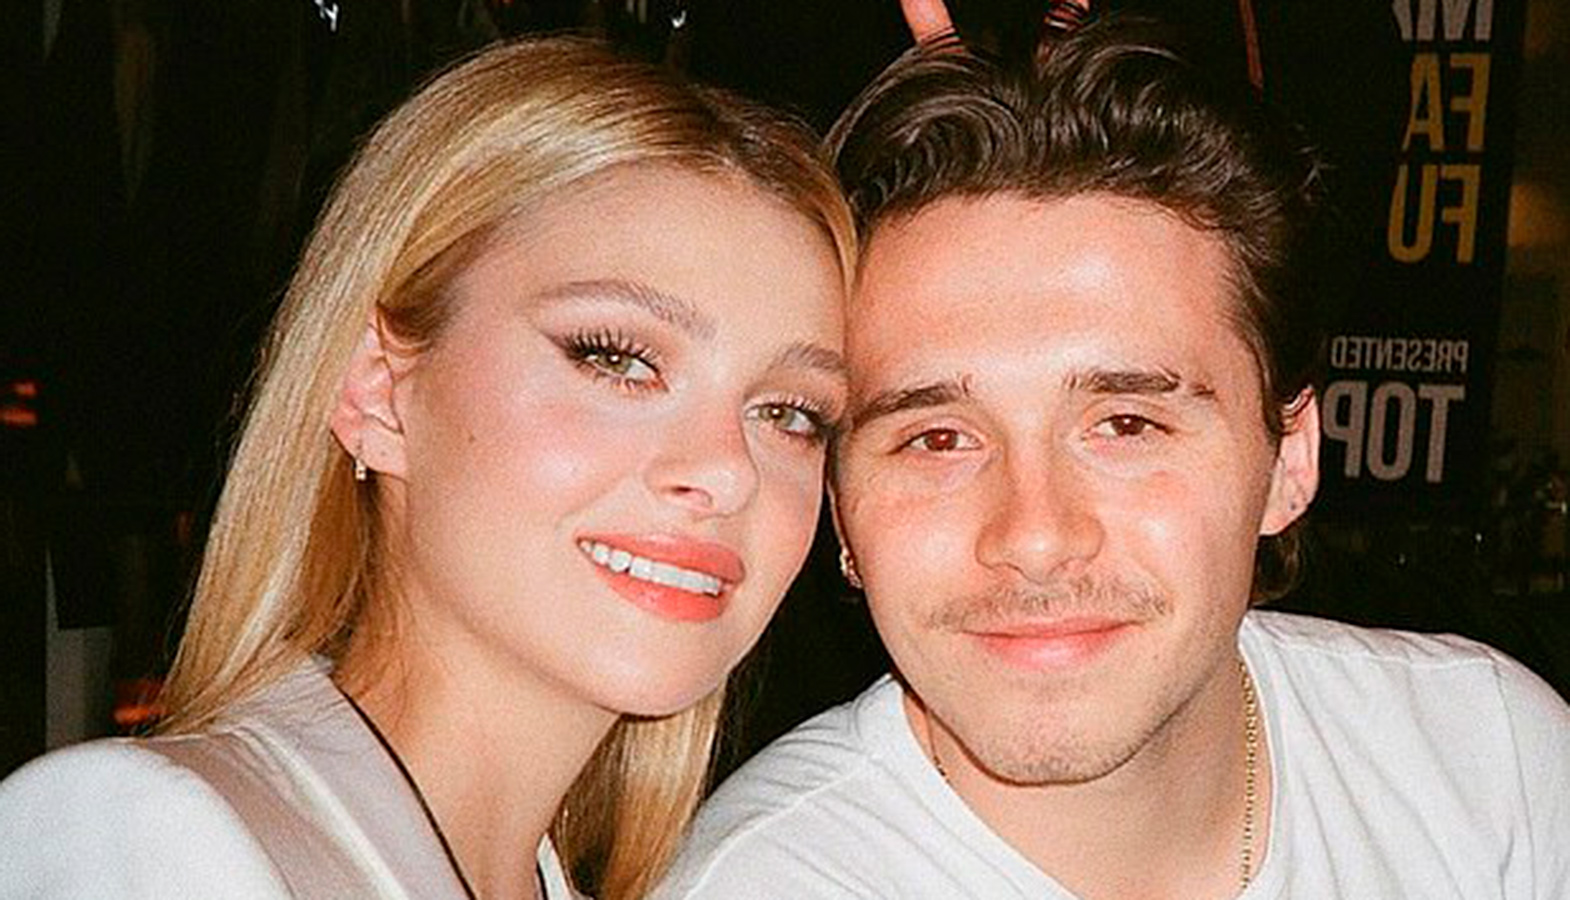 Brooklyn Beckham Is Engaged To Nicola Peltz